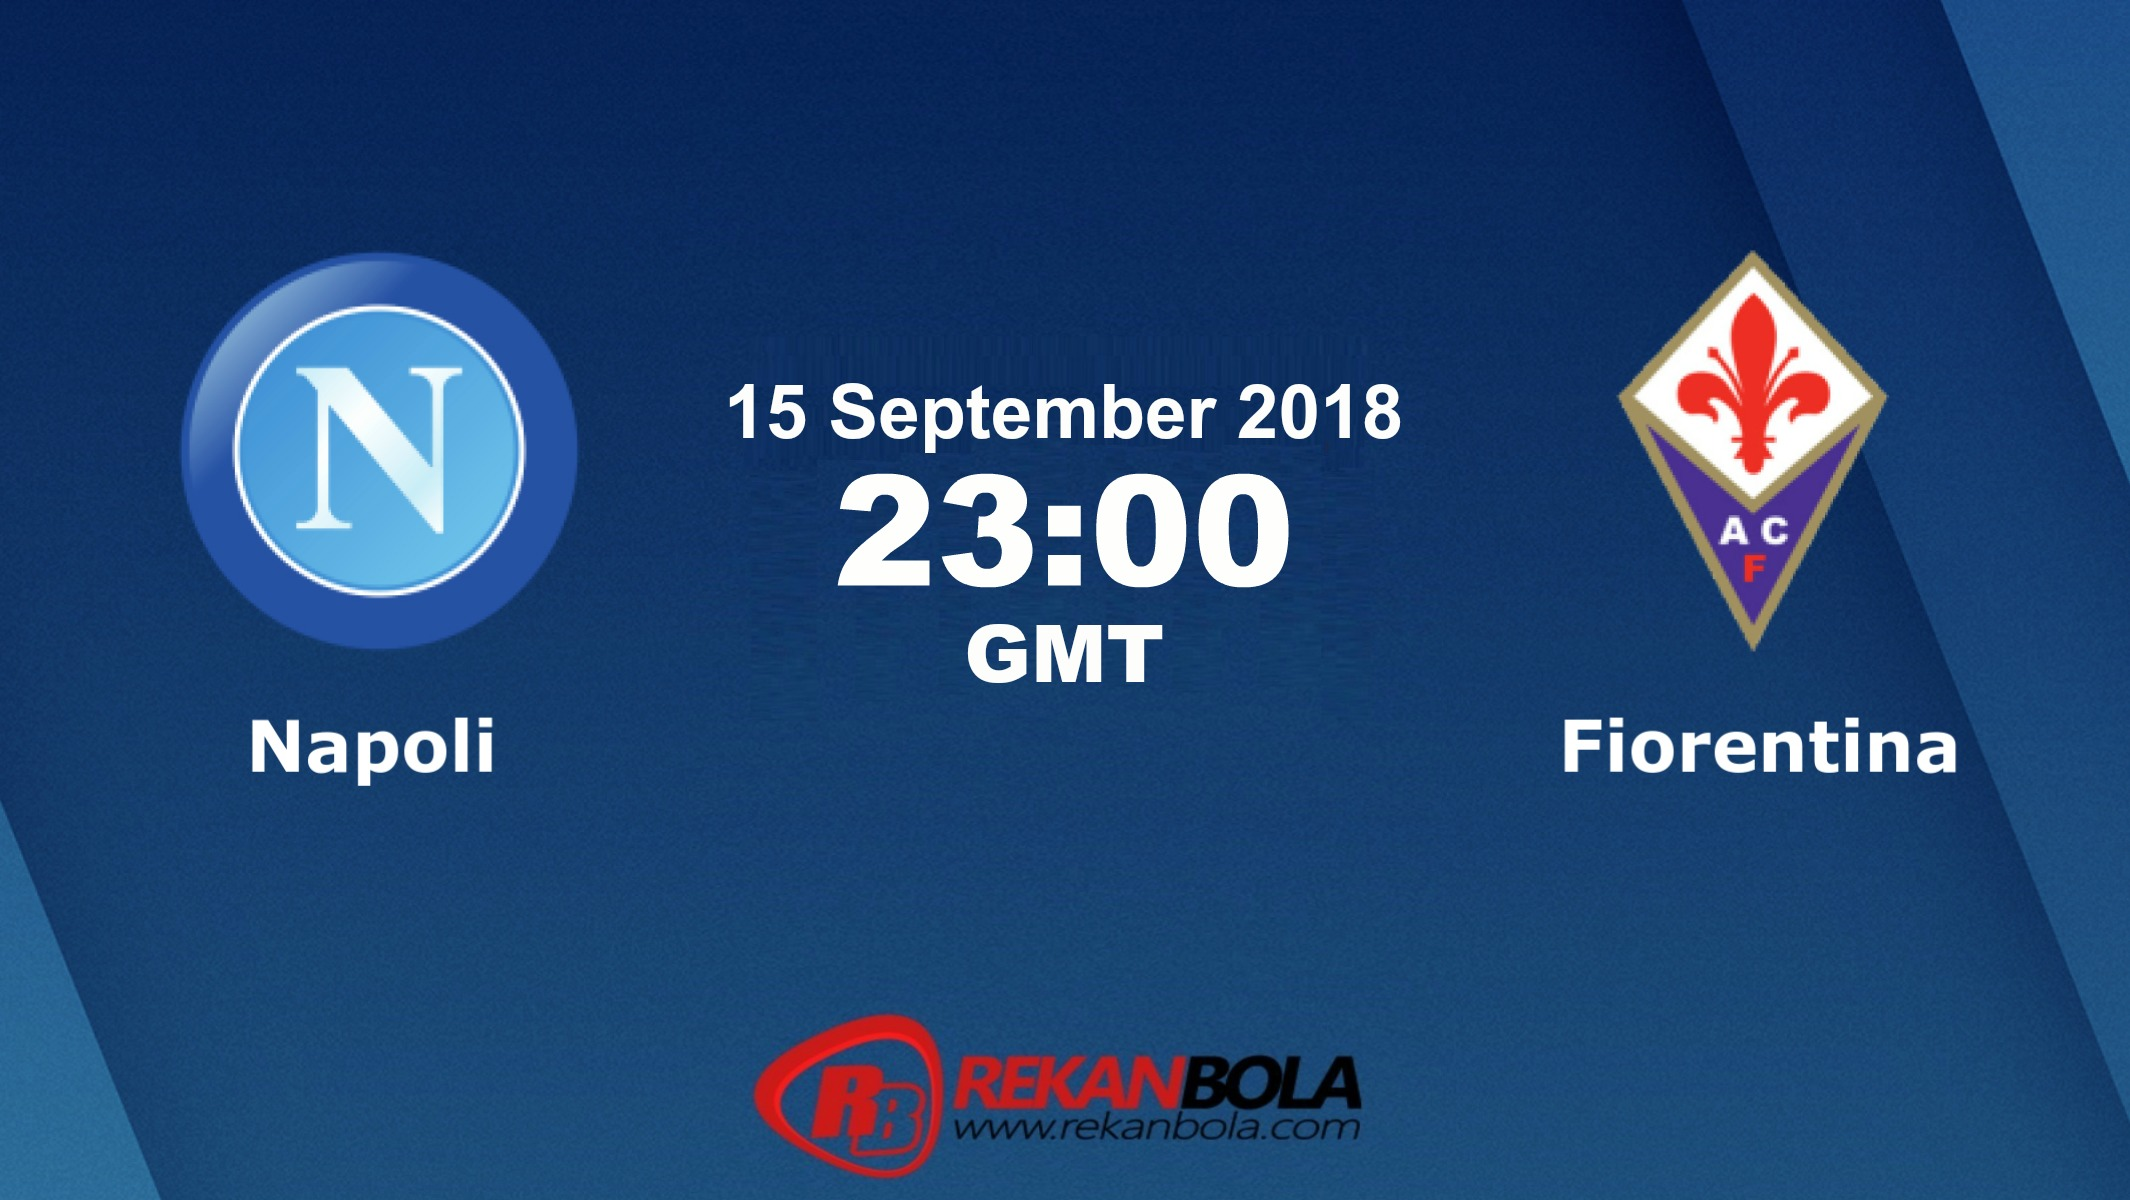 Nonton Siaran Live Streaming Napoli Vs Fiorentina 15 September 2018